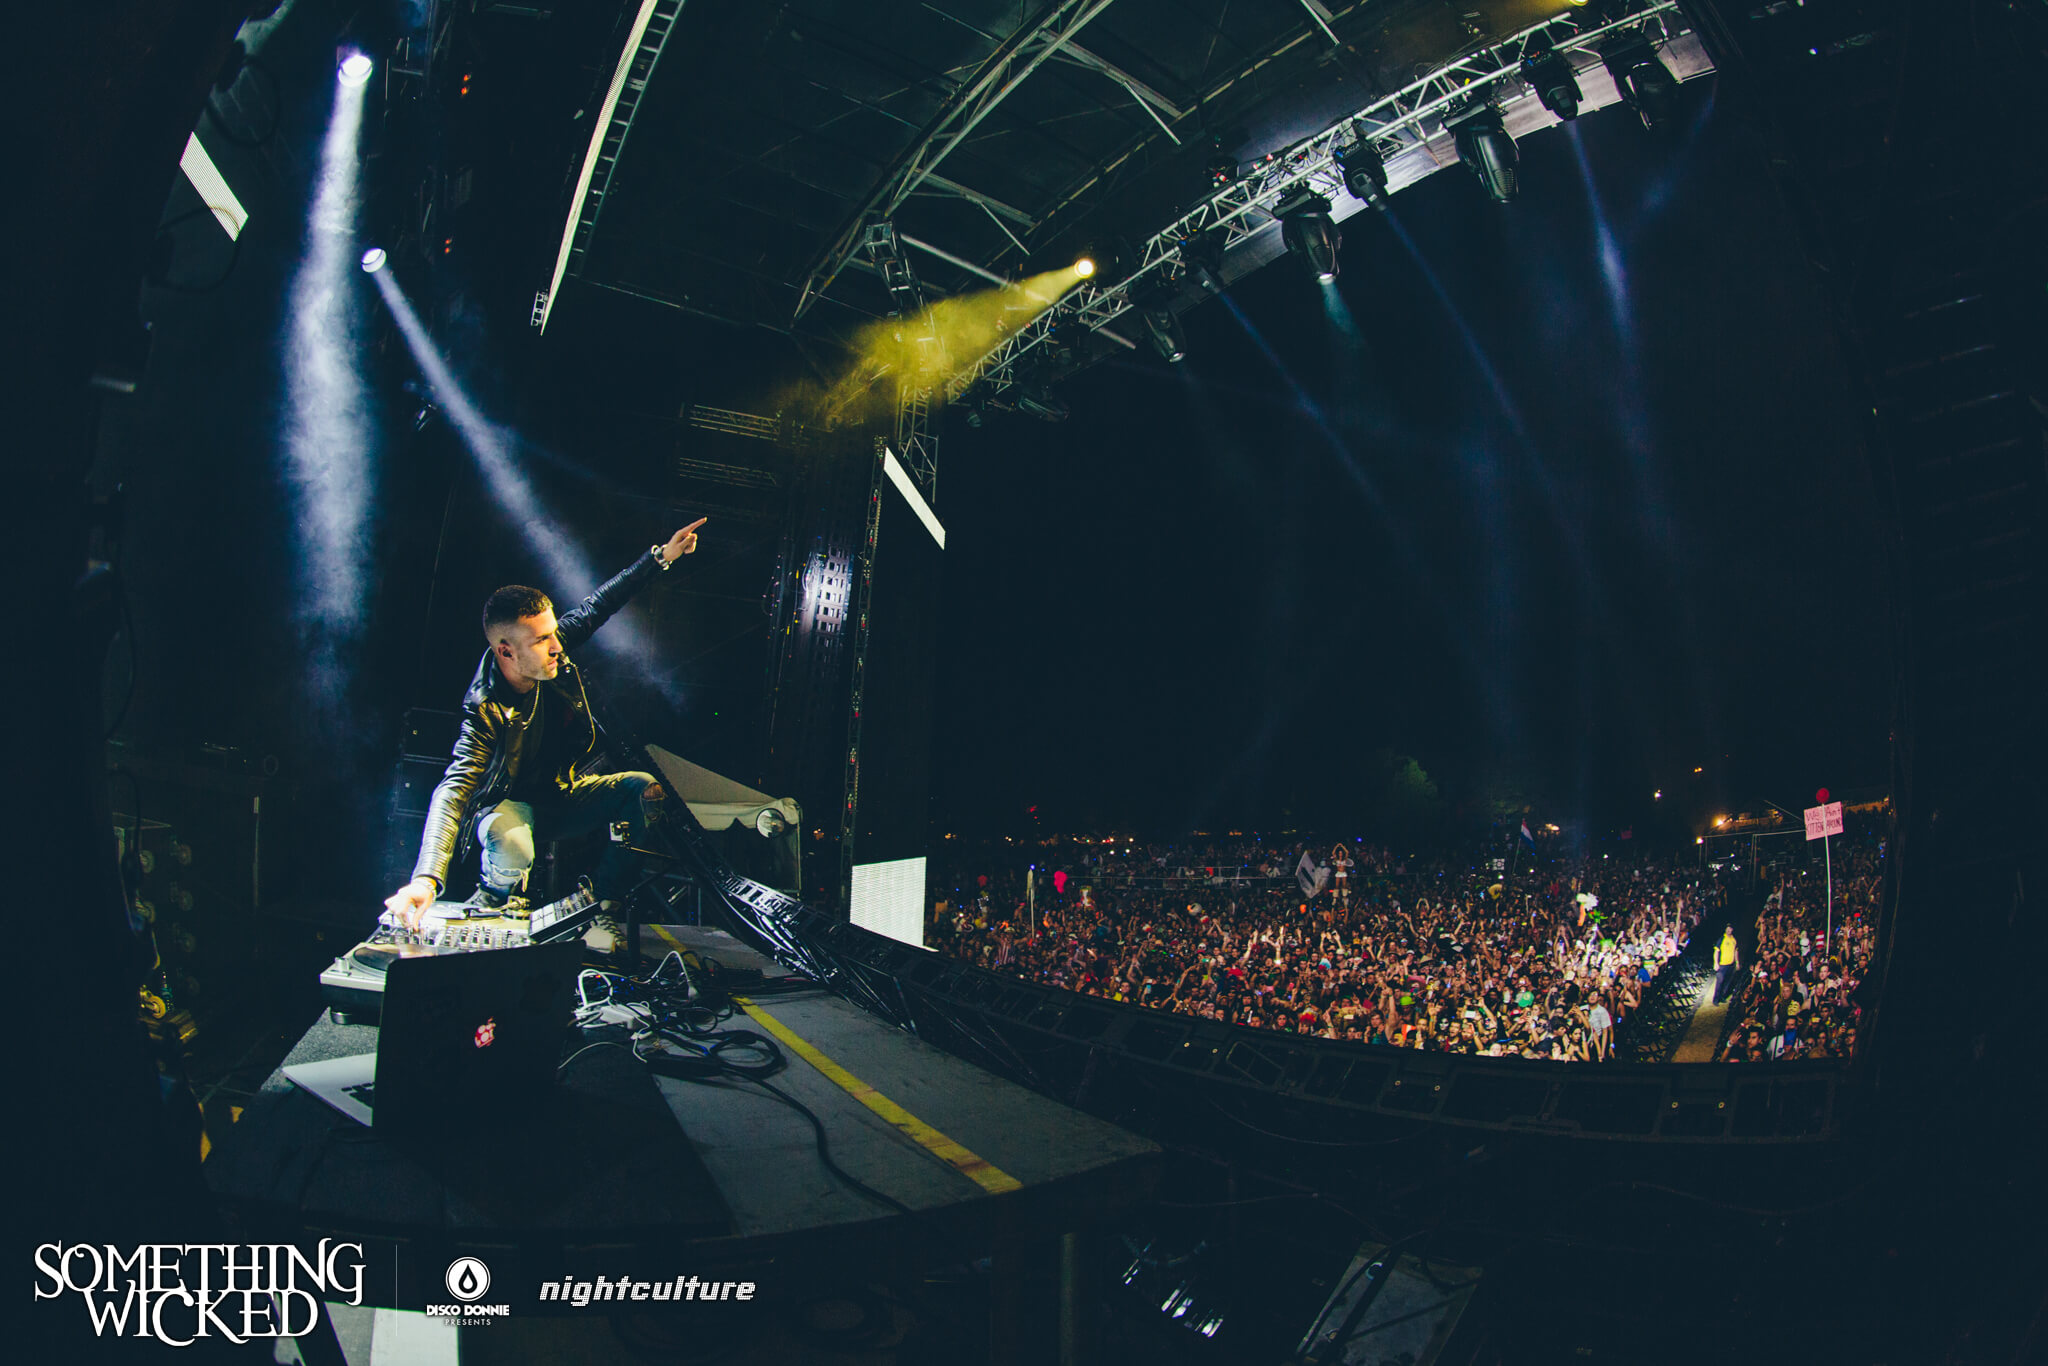 a-trak performing live at something wicked festival